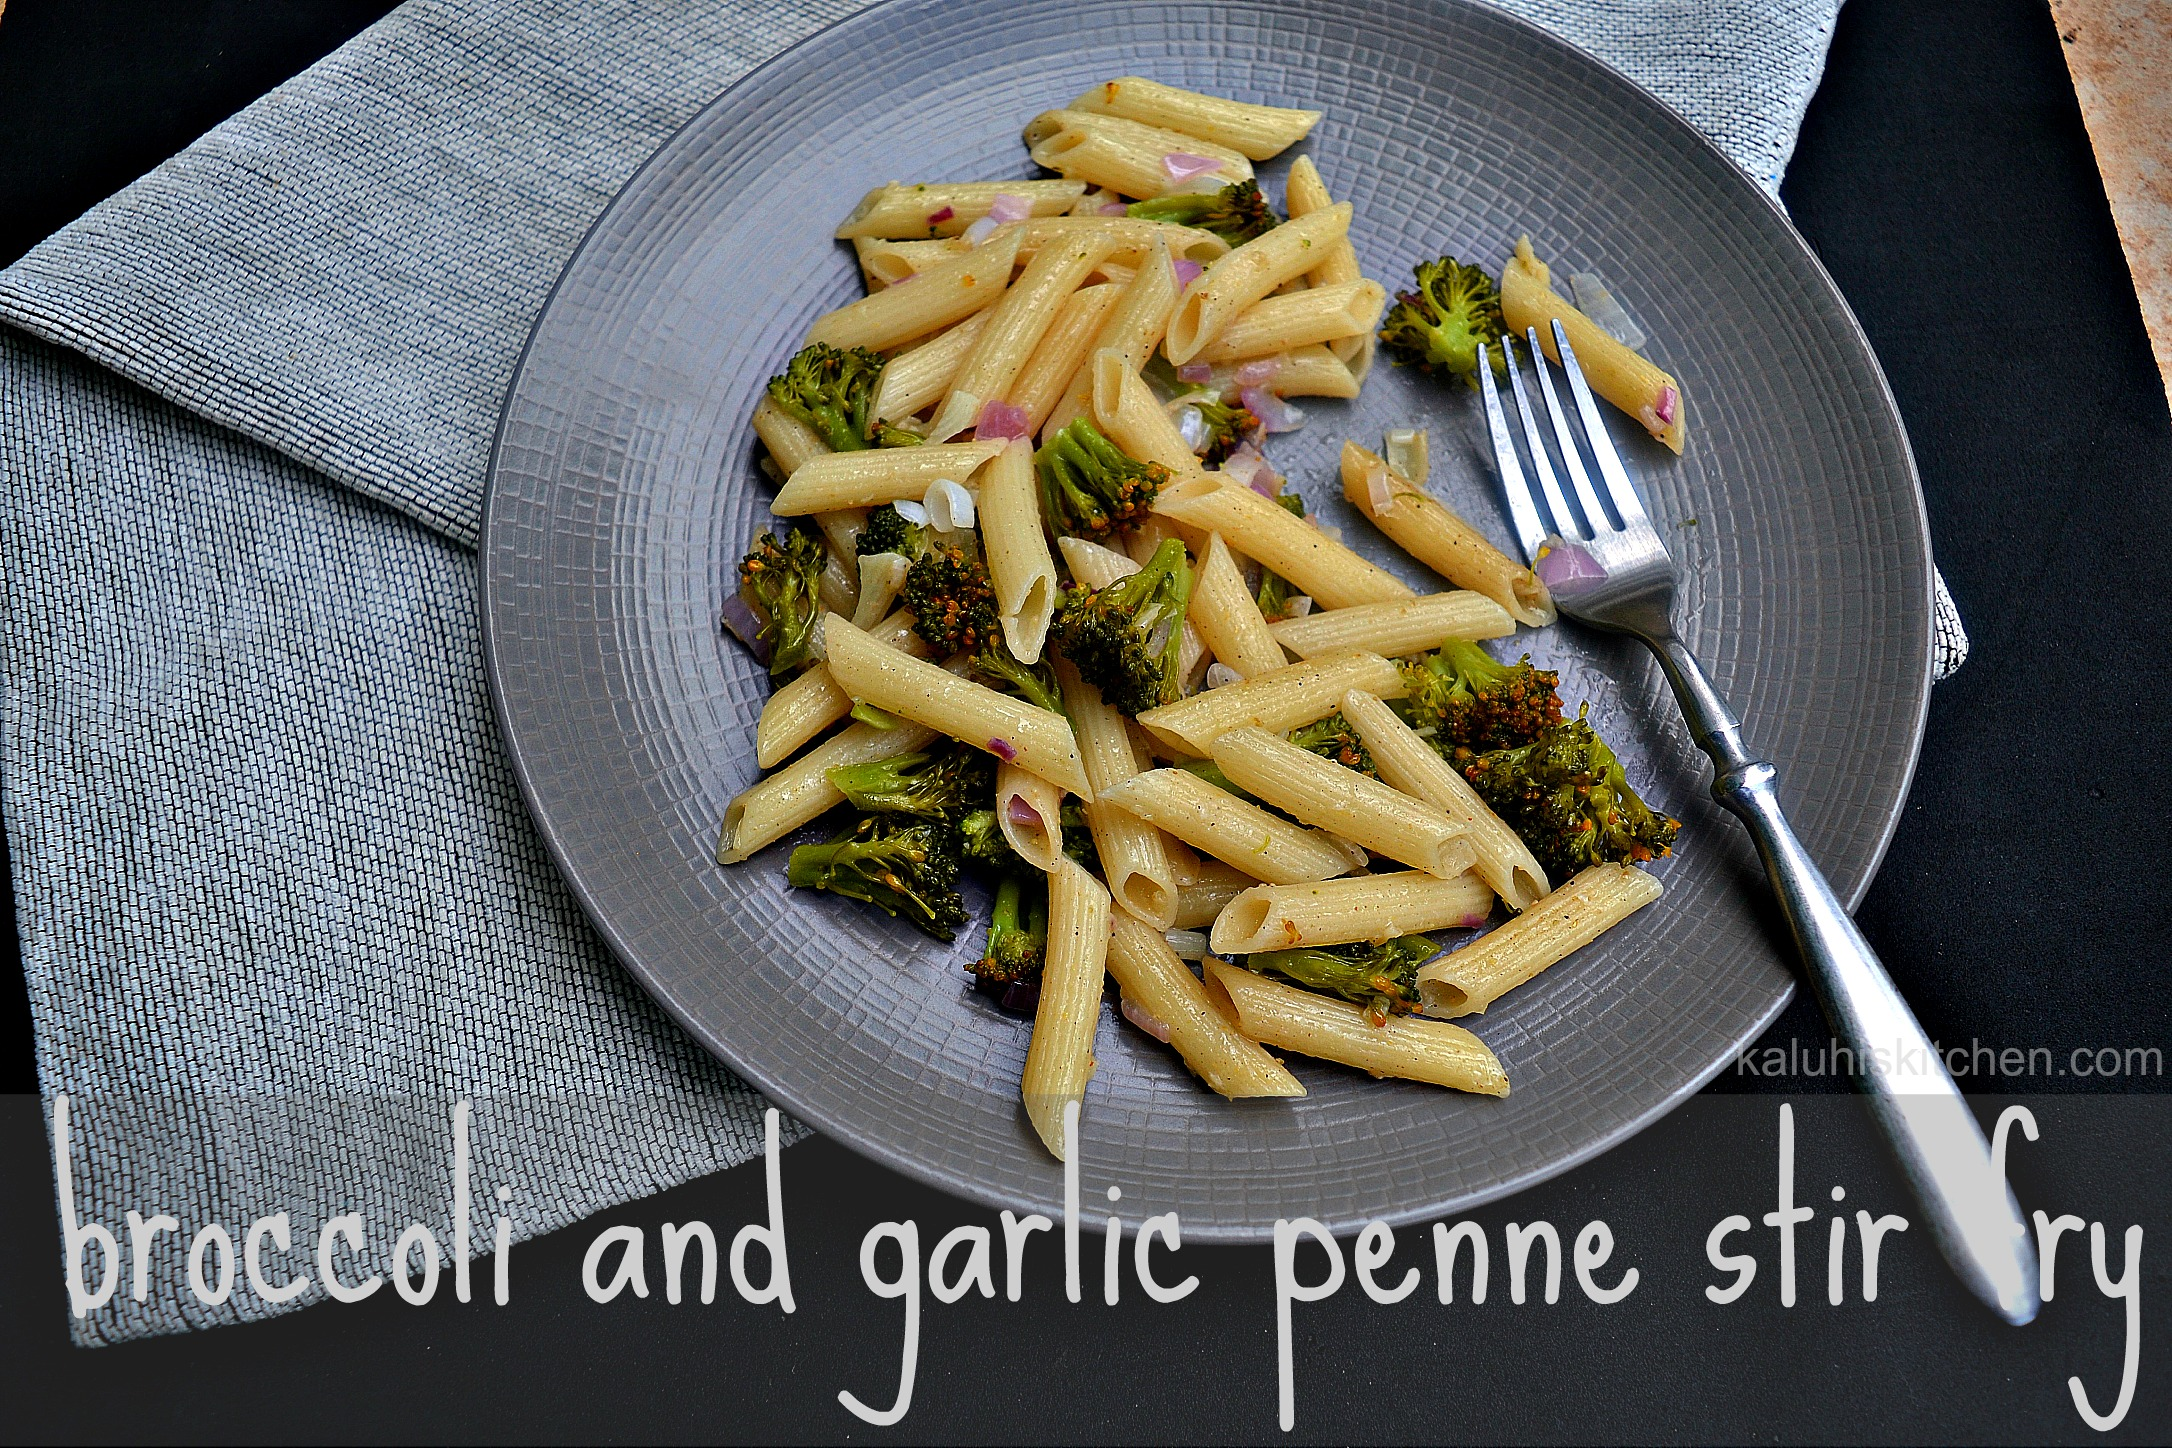 broccoli and garlic penne stir fry. it is healthy and delicious and very easy to make_kaluhiskitchen.com